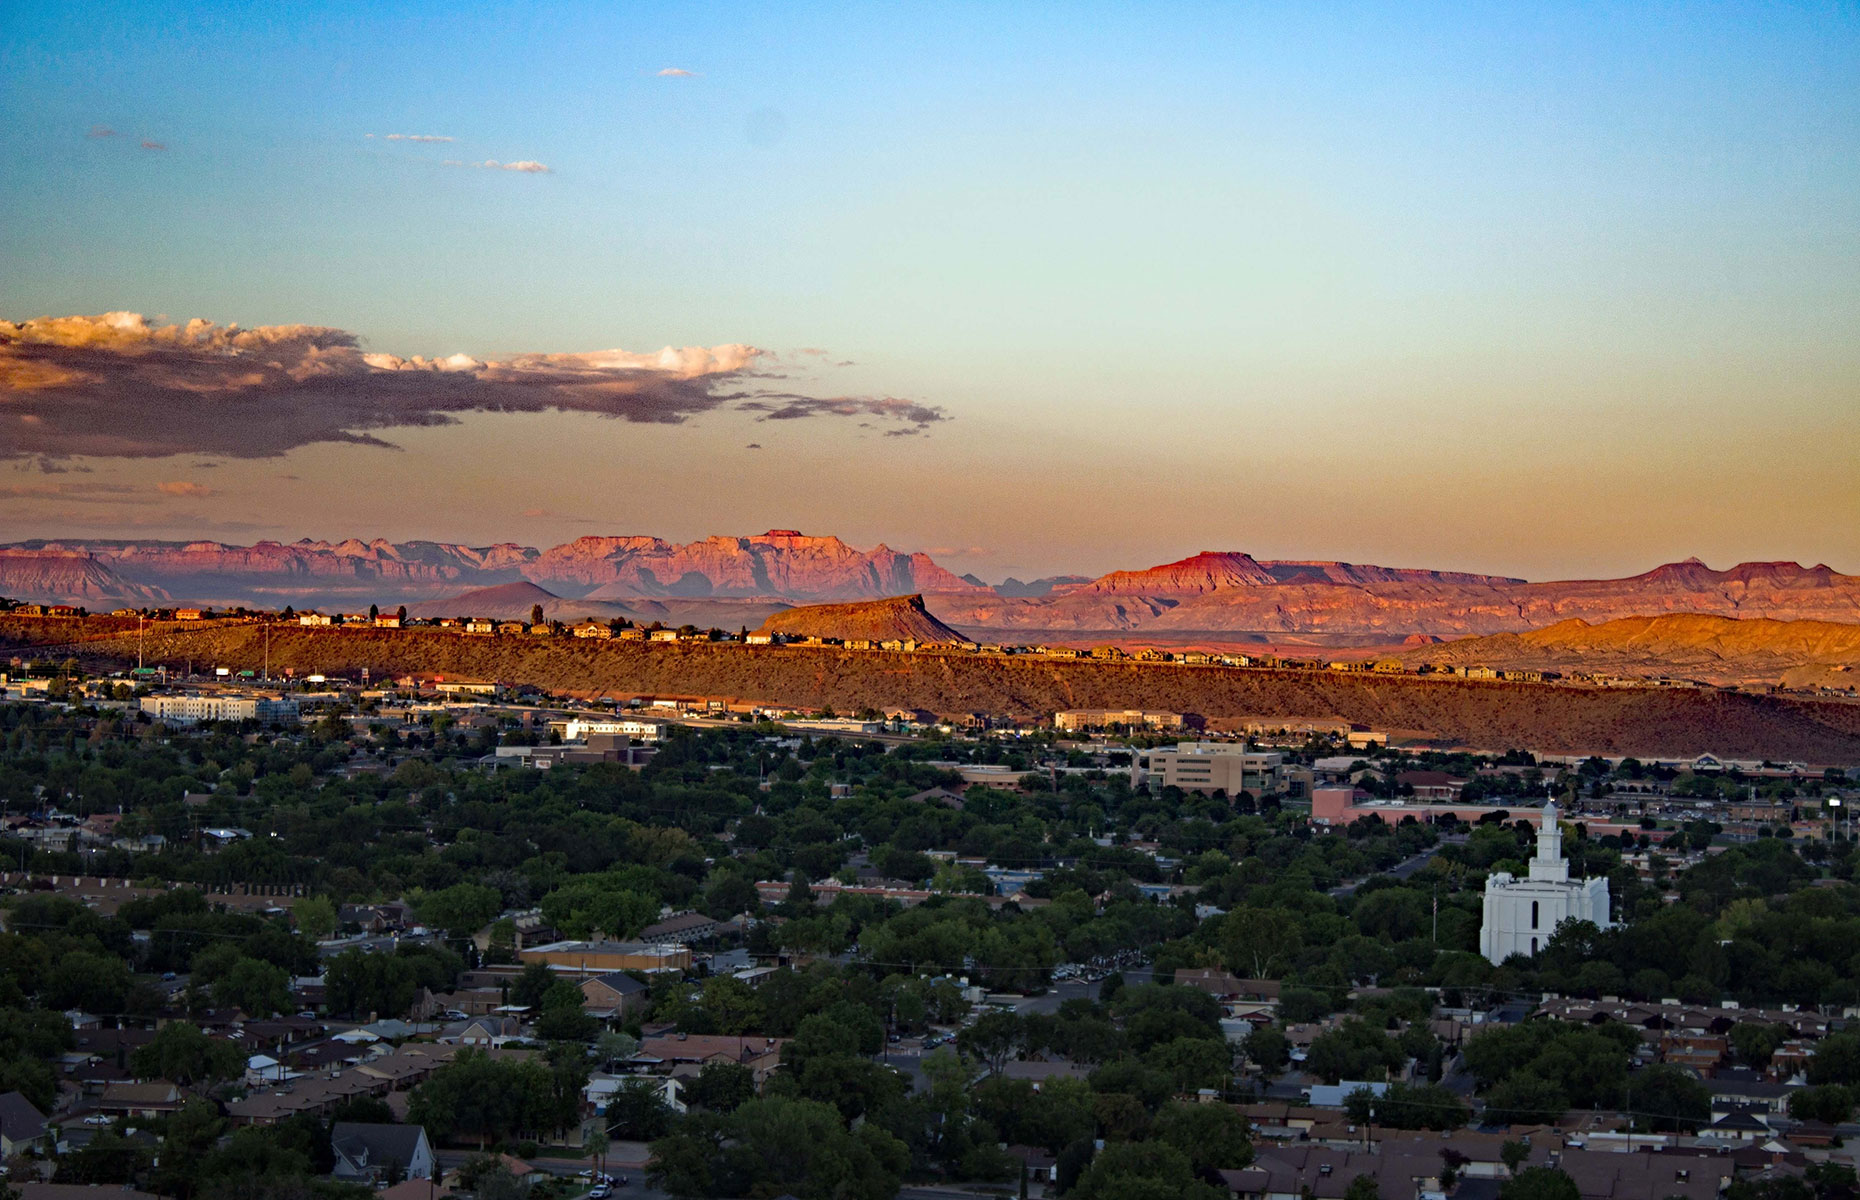 St George, Utah, at Sunset with the Mormon temple in the bottom right